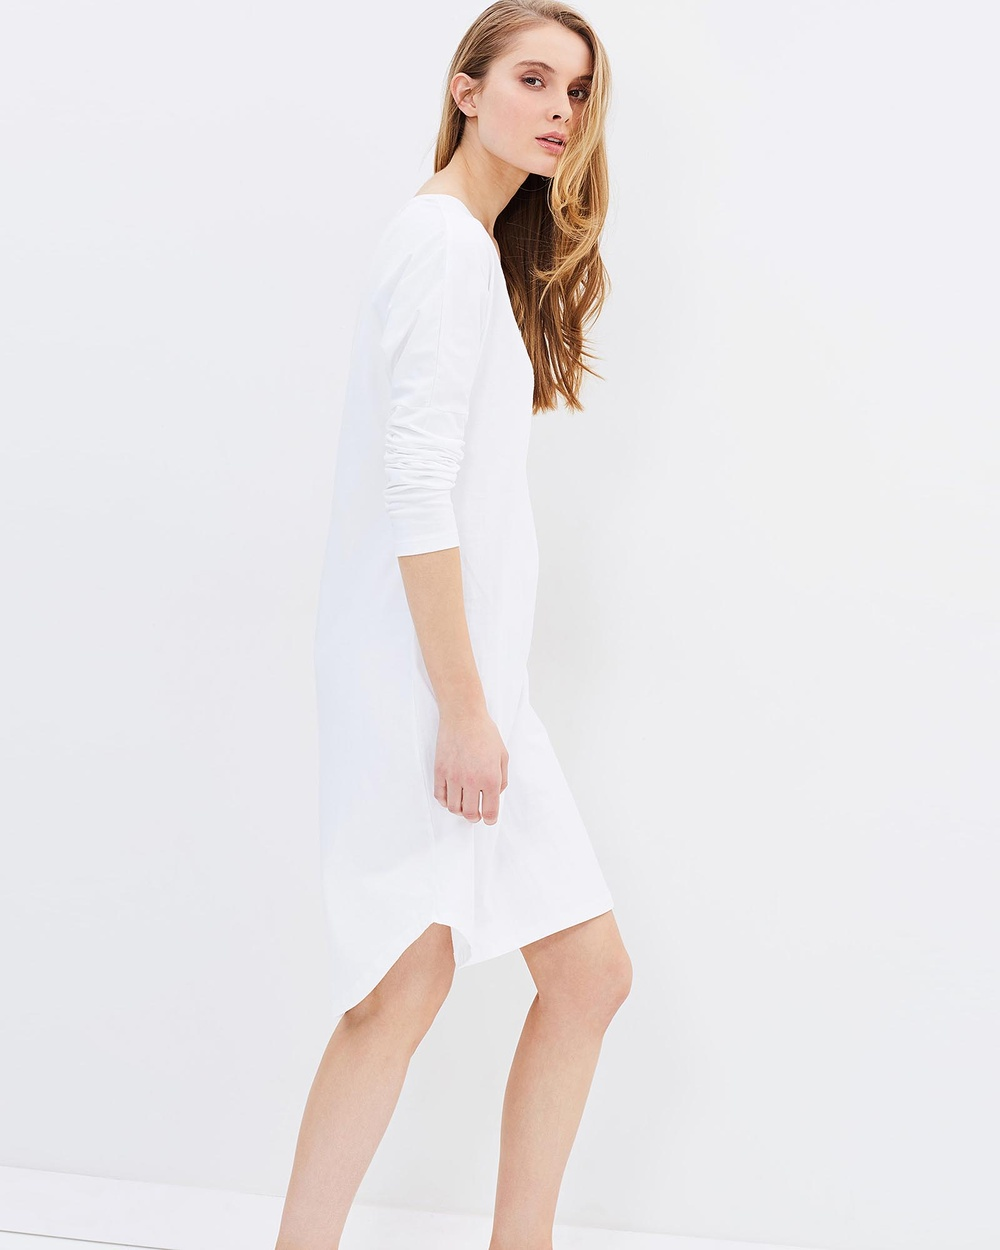 Cloth & Co. Organic Cotton Long Sleeve Dress Dresses White Organic Cotton Long Sleeve Dress